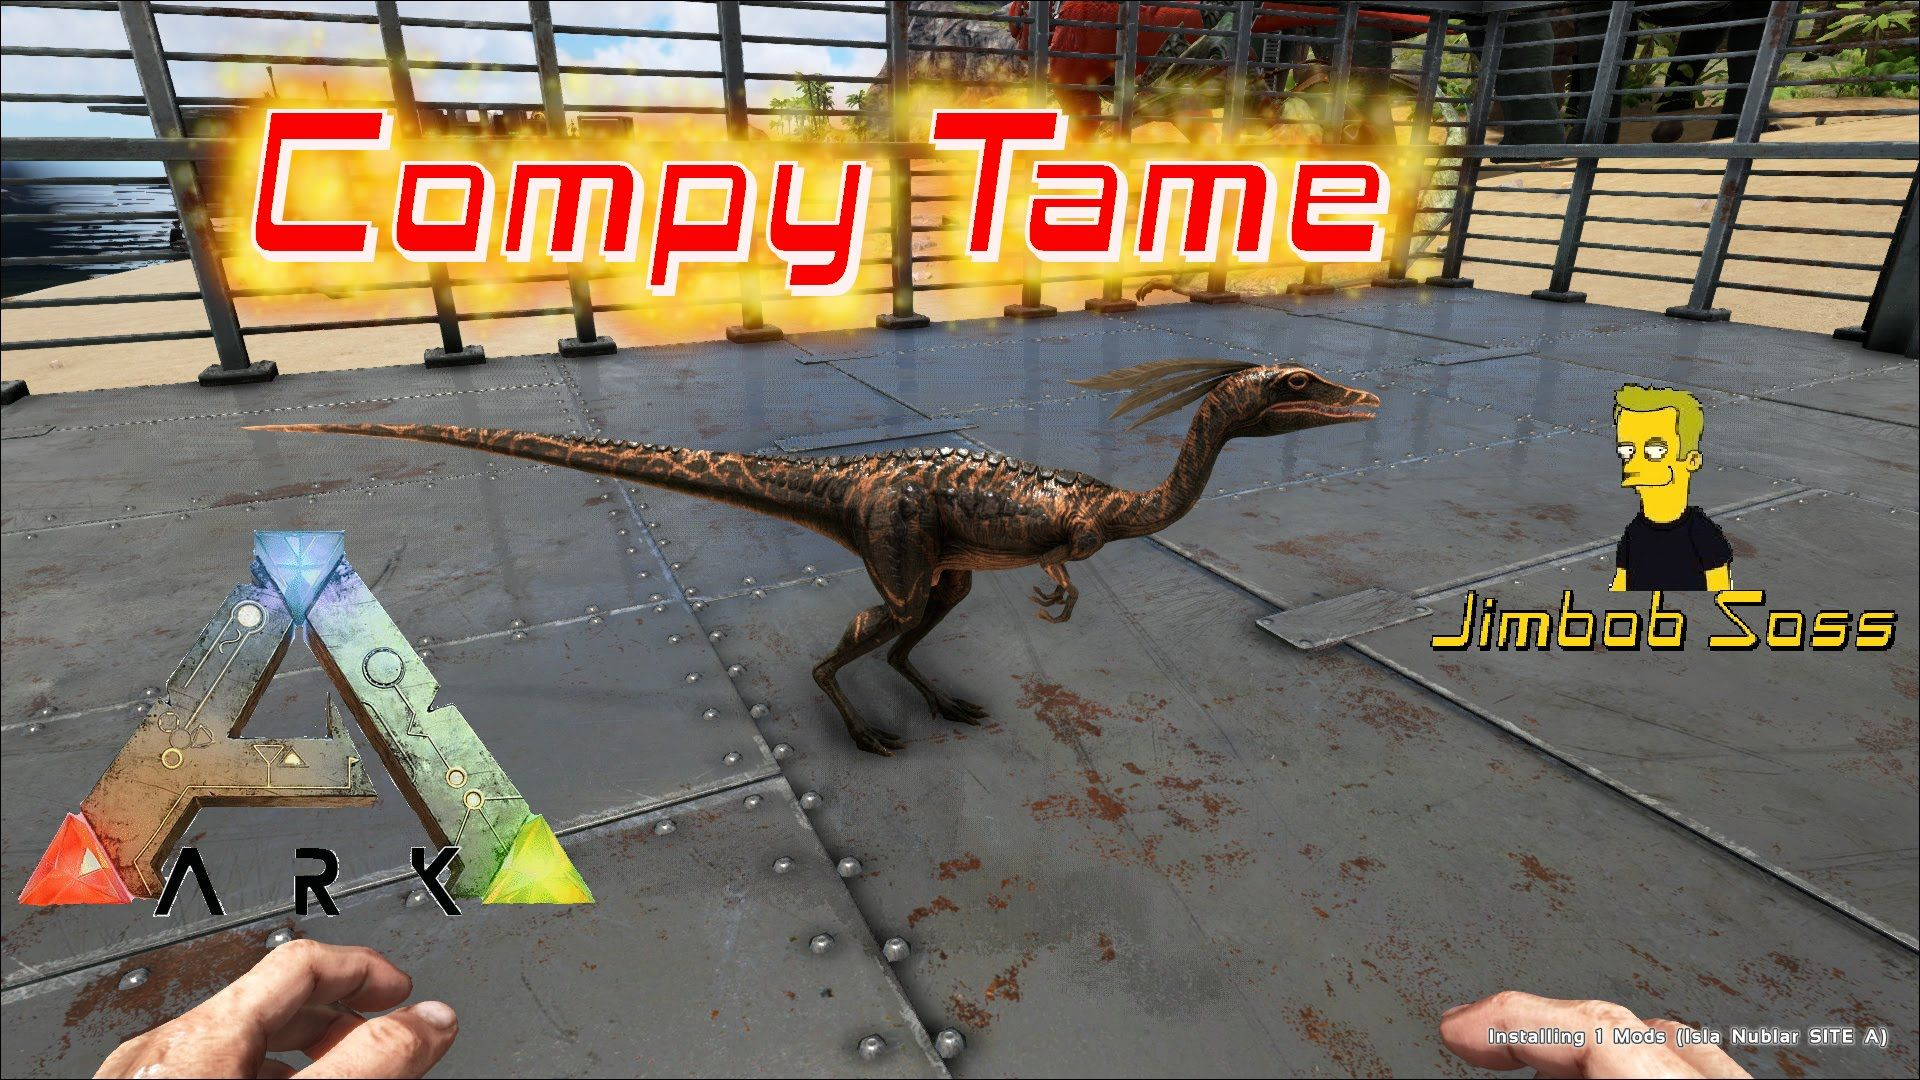 ARK Survival Evolved Compy tame | Ark Survival 3 | Ark survival